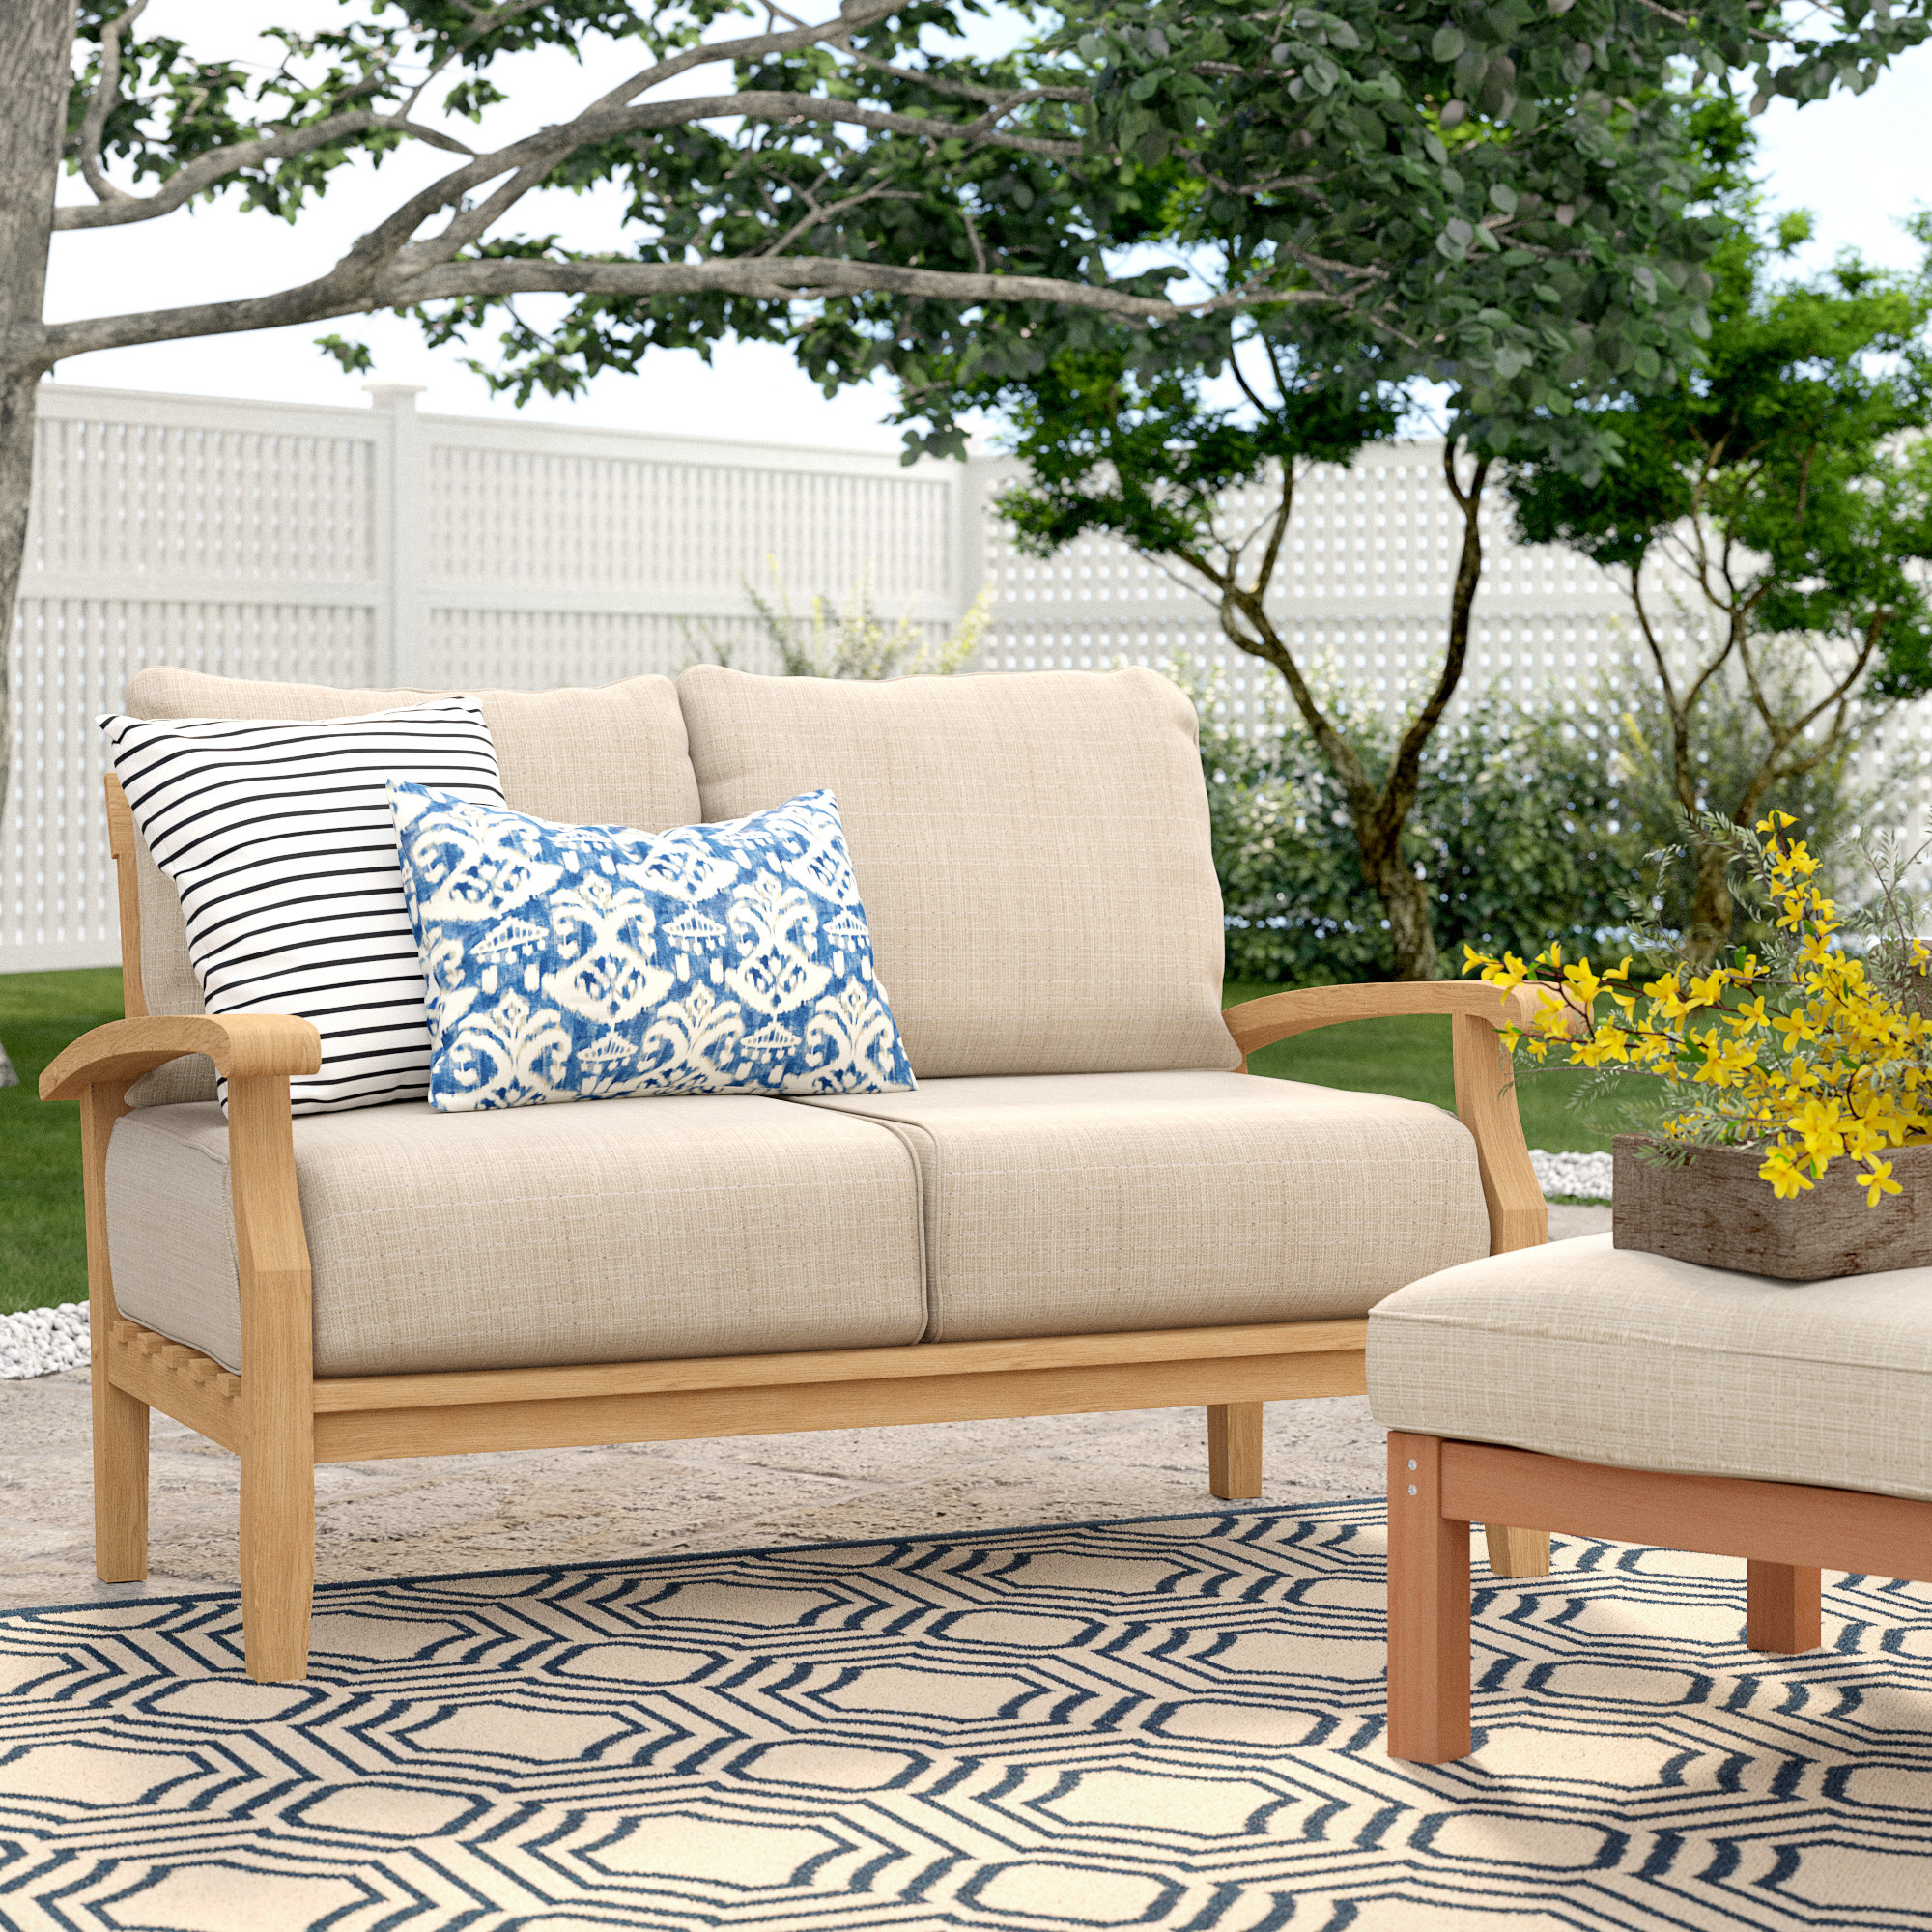 Most Popular Birch Lane™ Heritage Summerton Teak Loveseat With Cushions Throughout Bullock Outdoor Wooden Loveseats With Cushions (View 6 of 20)